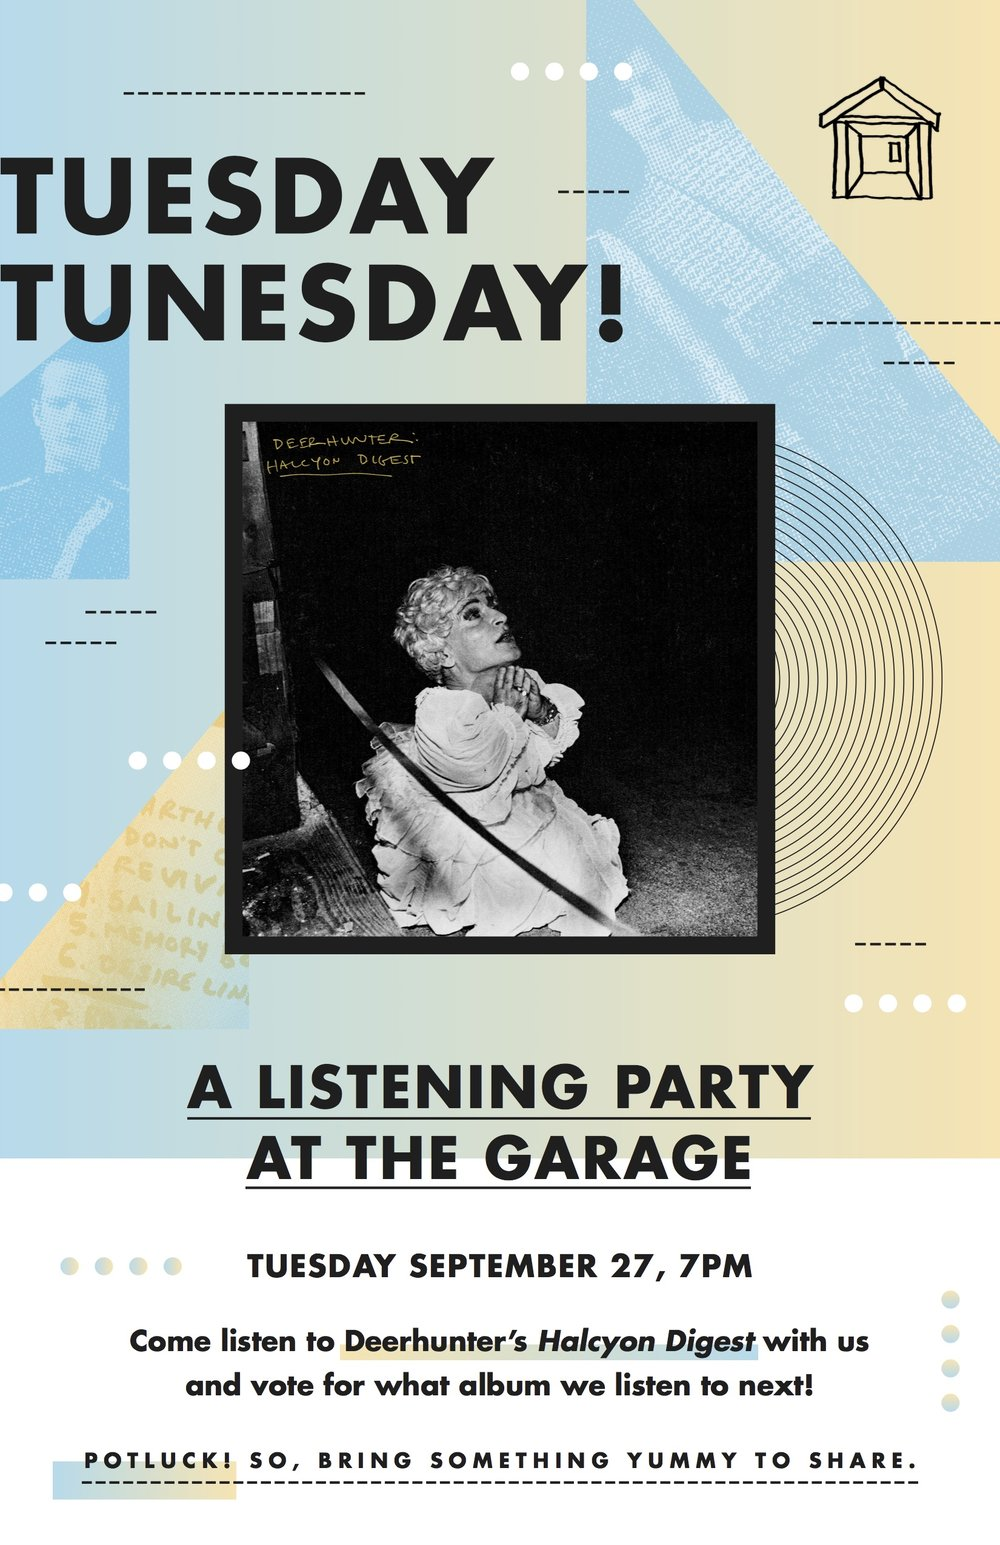 Garage-Deerhunter-Tunesday-01-3.jpg